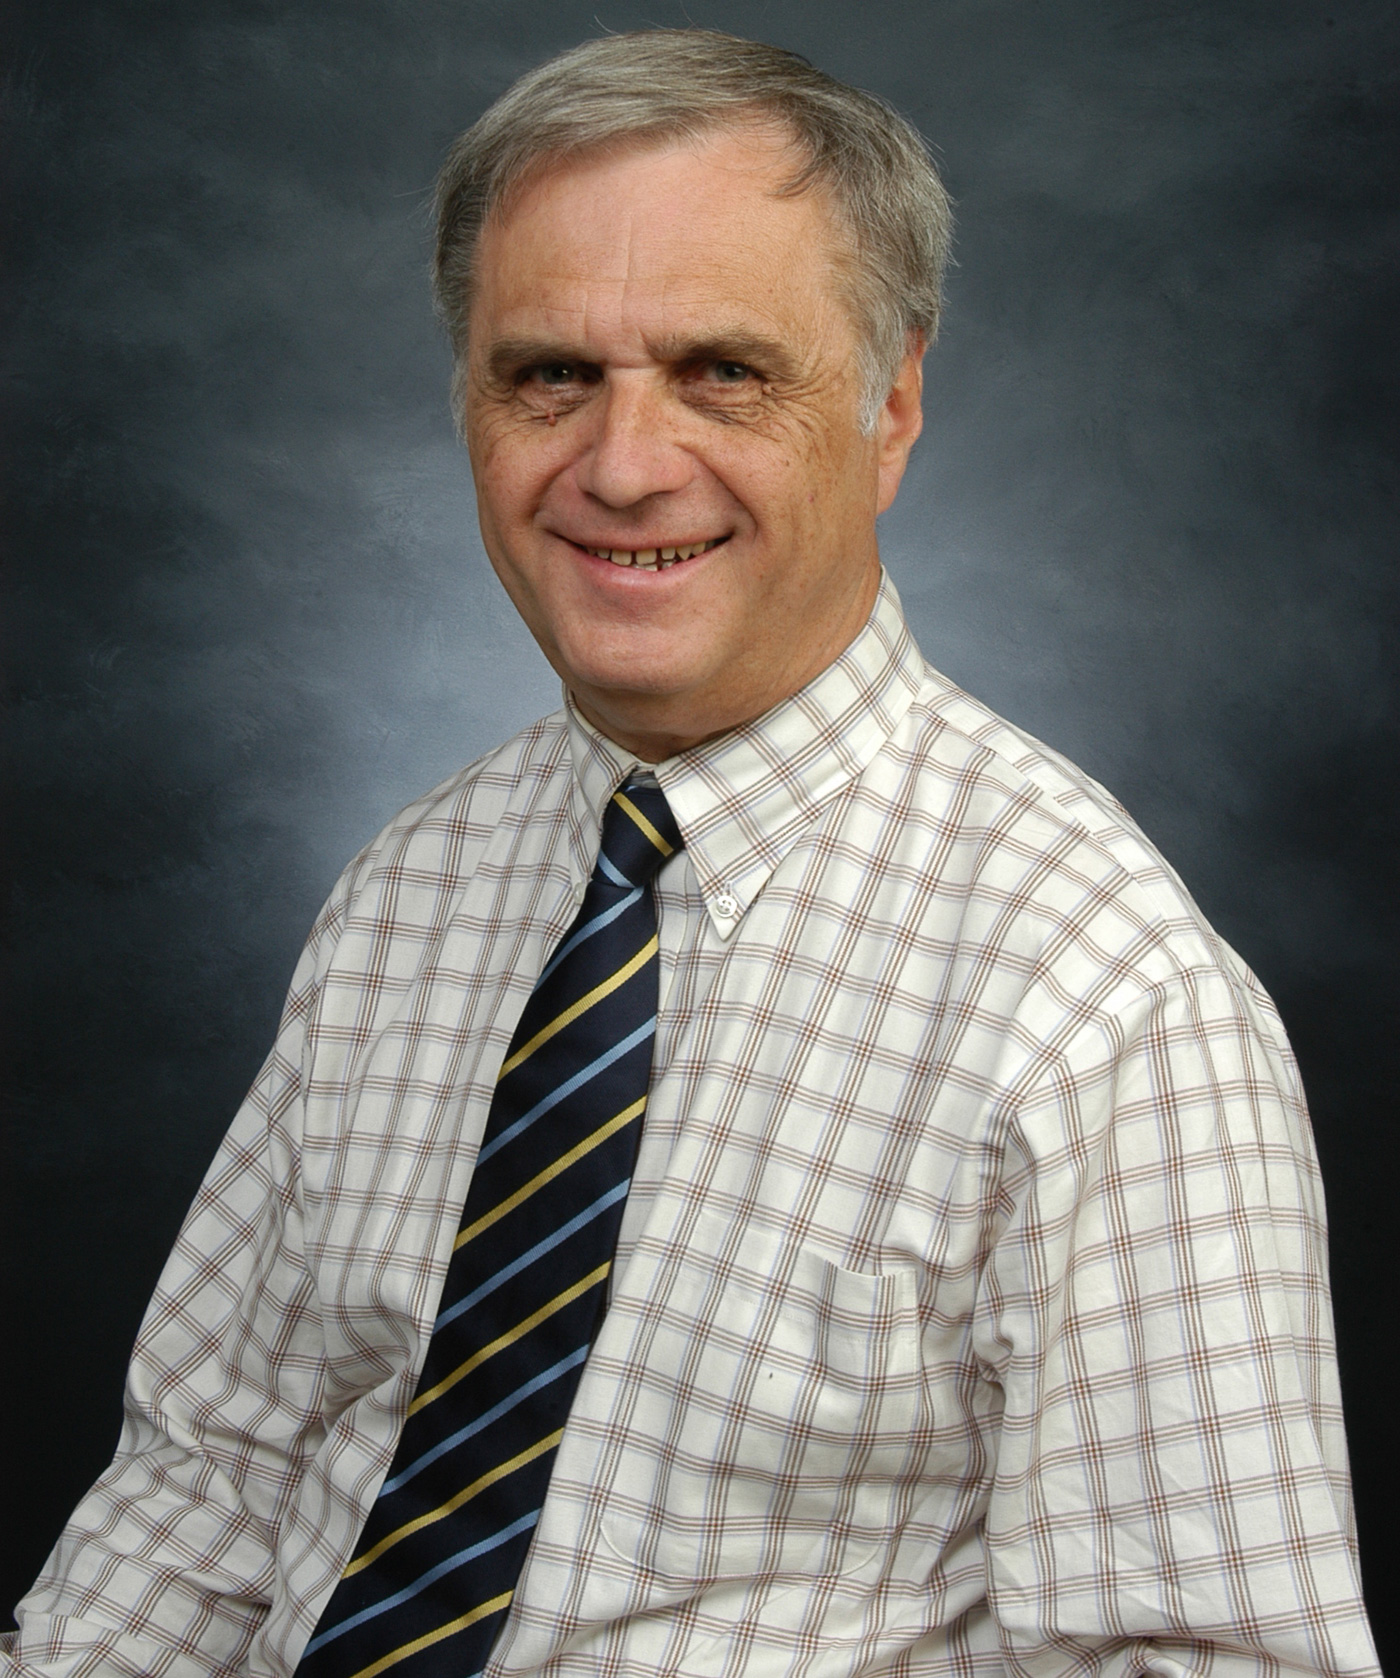 Arnold O' Brien is Professor Emeritus at UMASS Lowell. He joined the faculty in 1969 and achieved the rank of full professor in 1983.  He has offered courses covering a wide range of areas and served as Department Chair in EEAS from 1976 until his retirement in 2010.